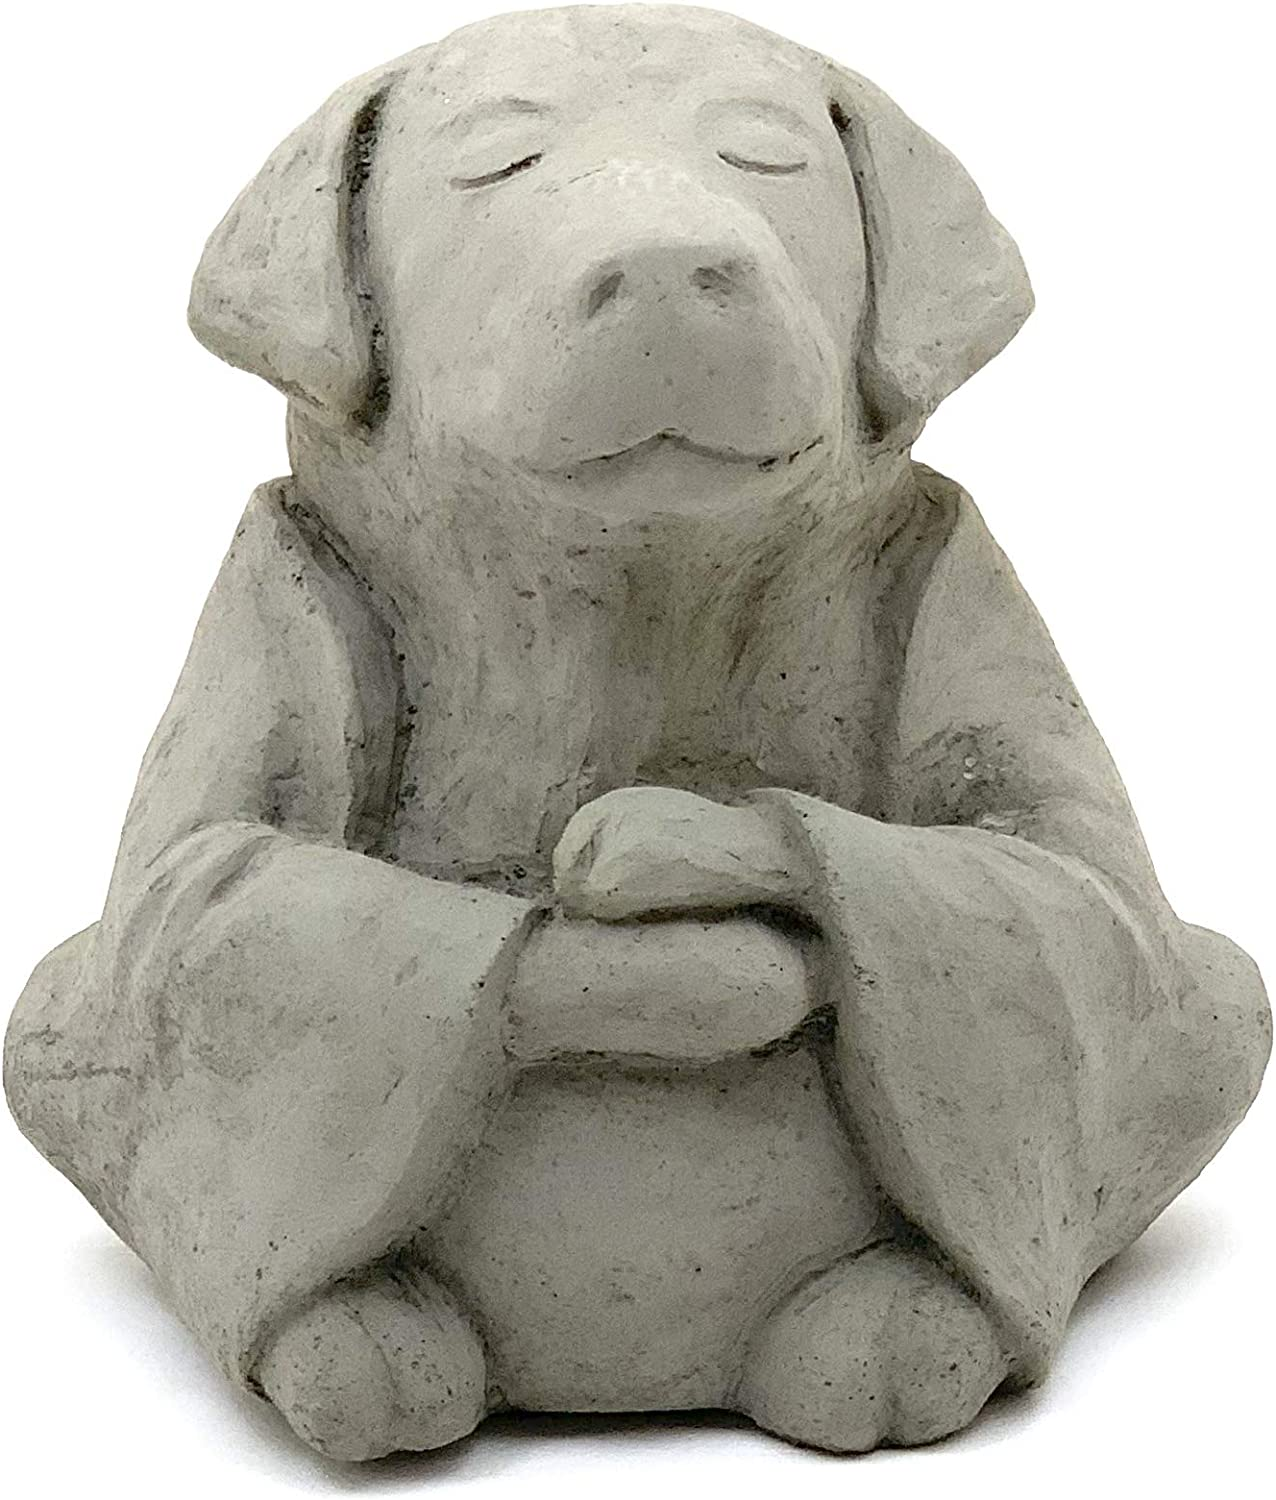 Meditating Buddha Dog: Solid Durable Stone. Perfect for Home, Garden or Gift. Sealed for Outdoor Use. Handcrafted in USA (Antique Gray)